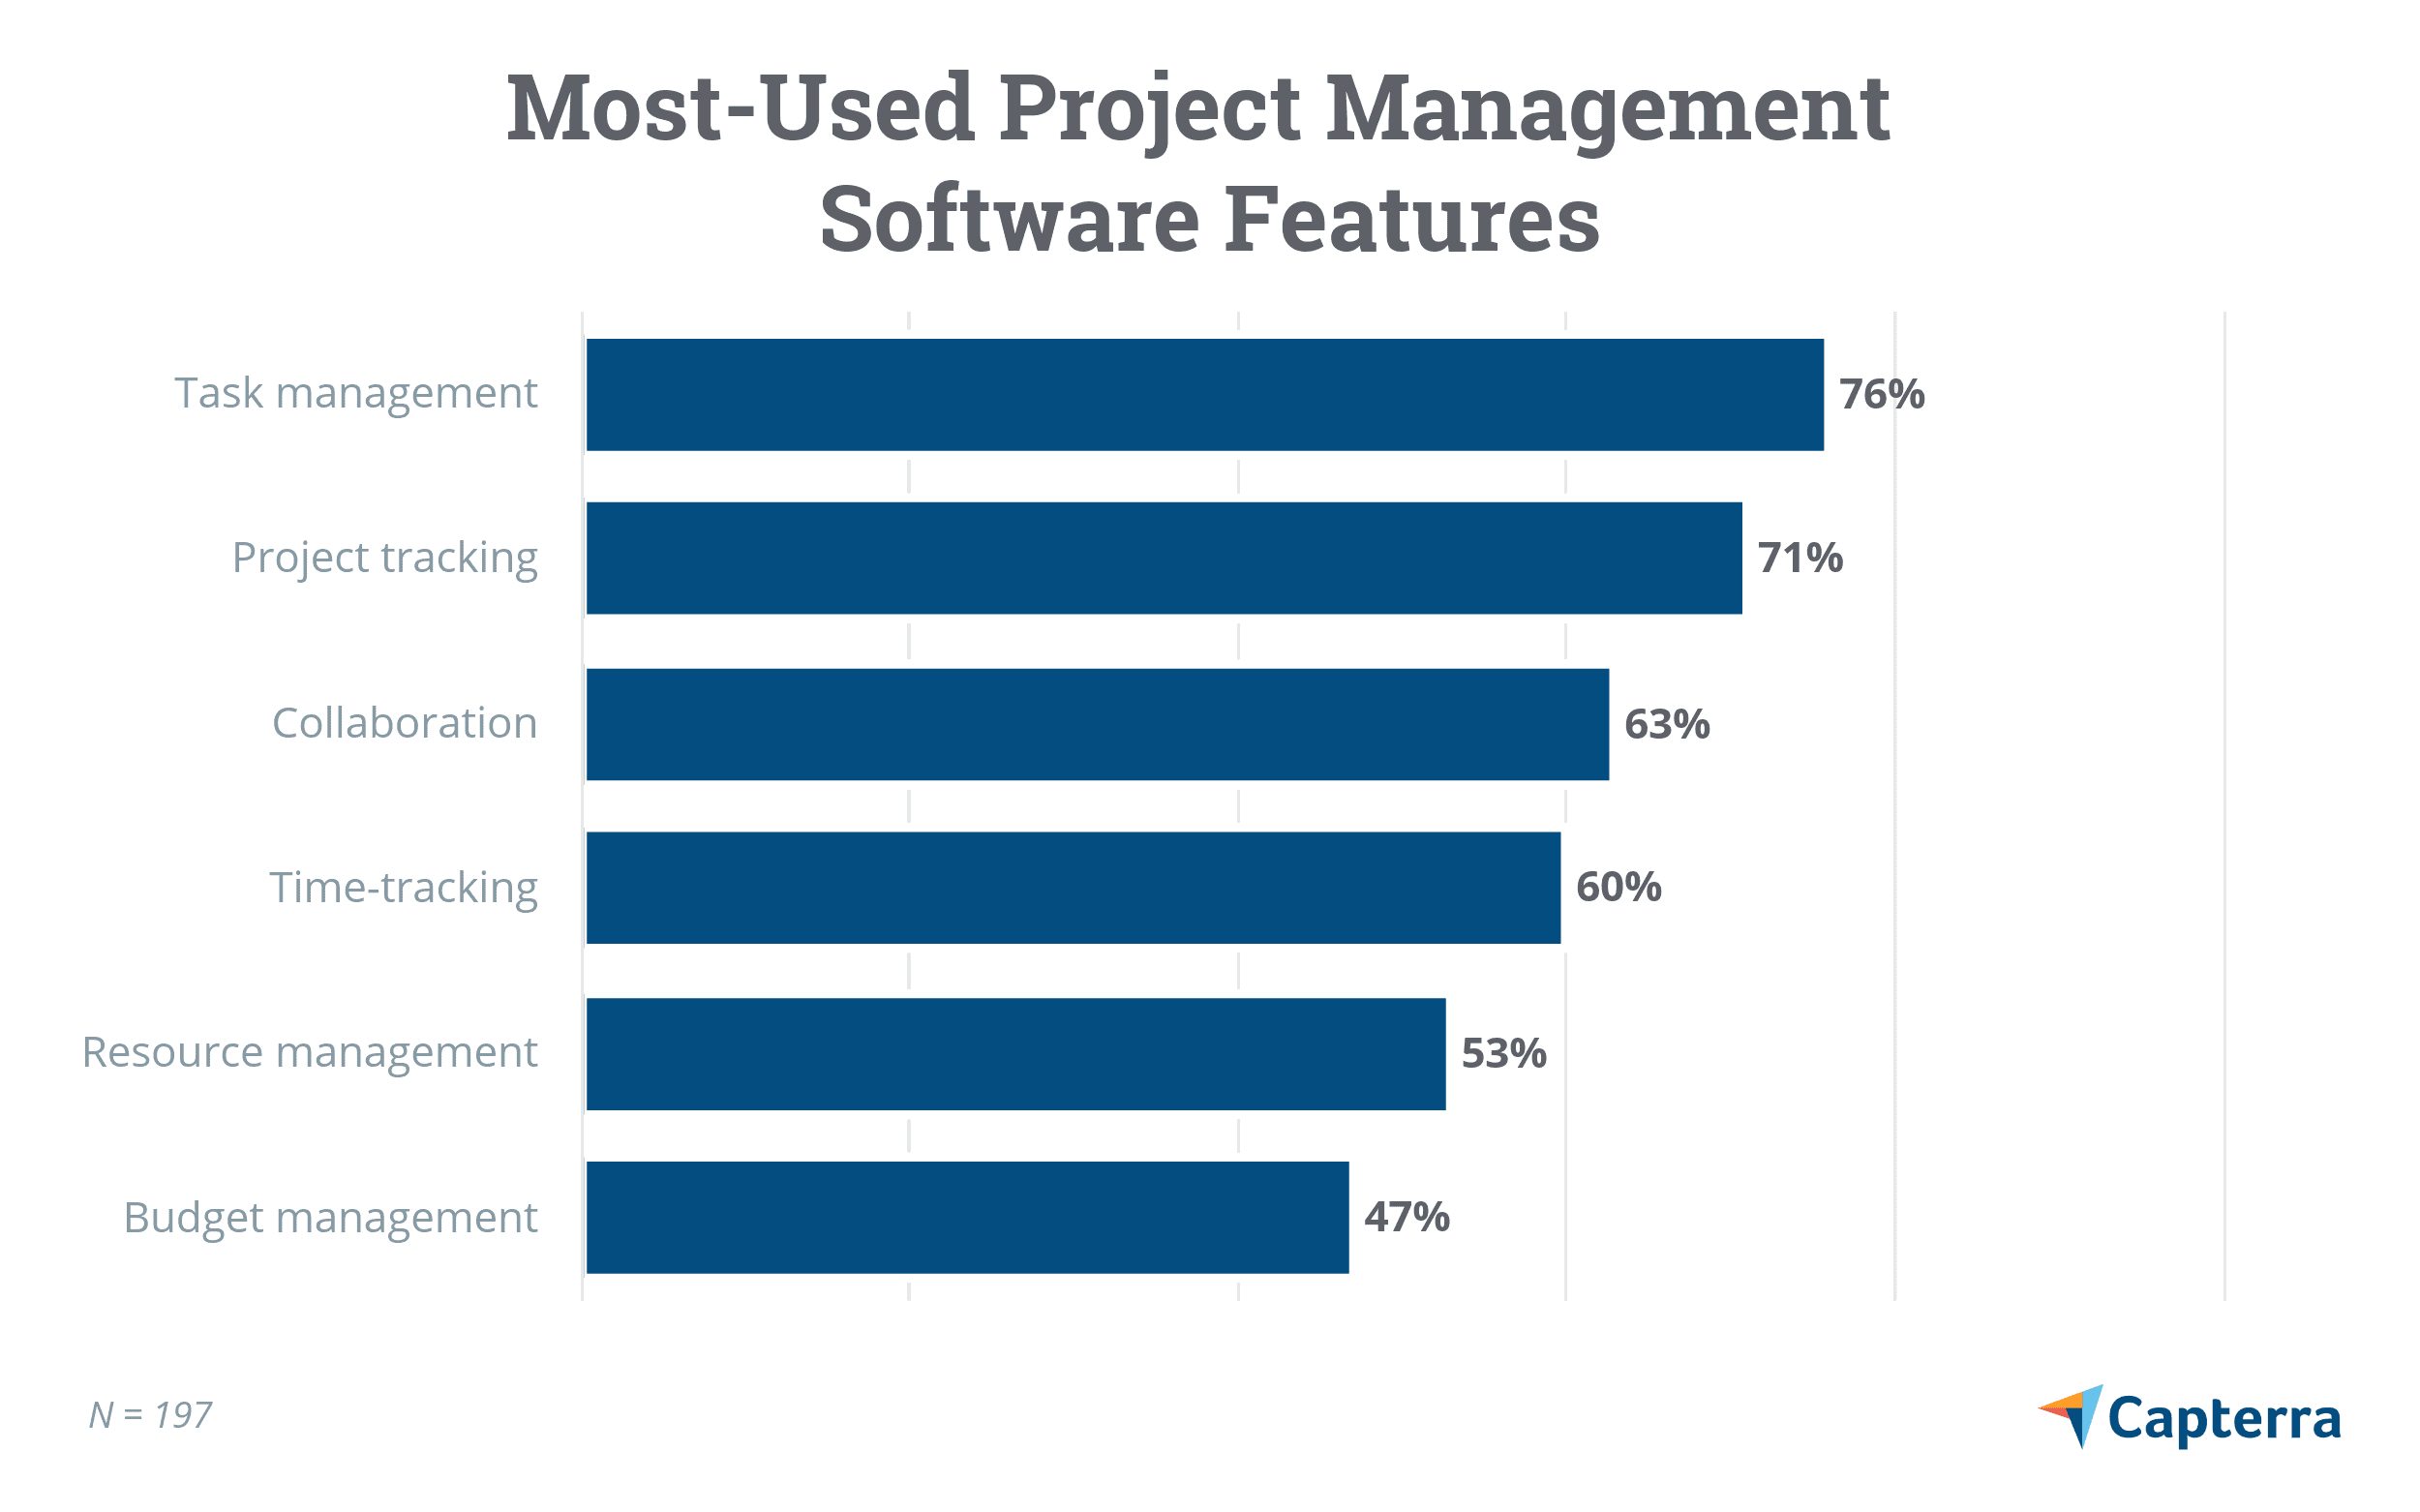 Most used PM software features